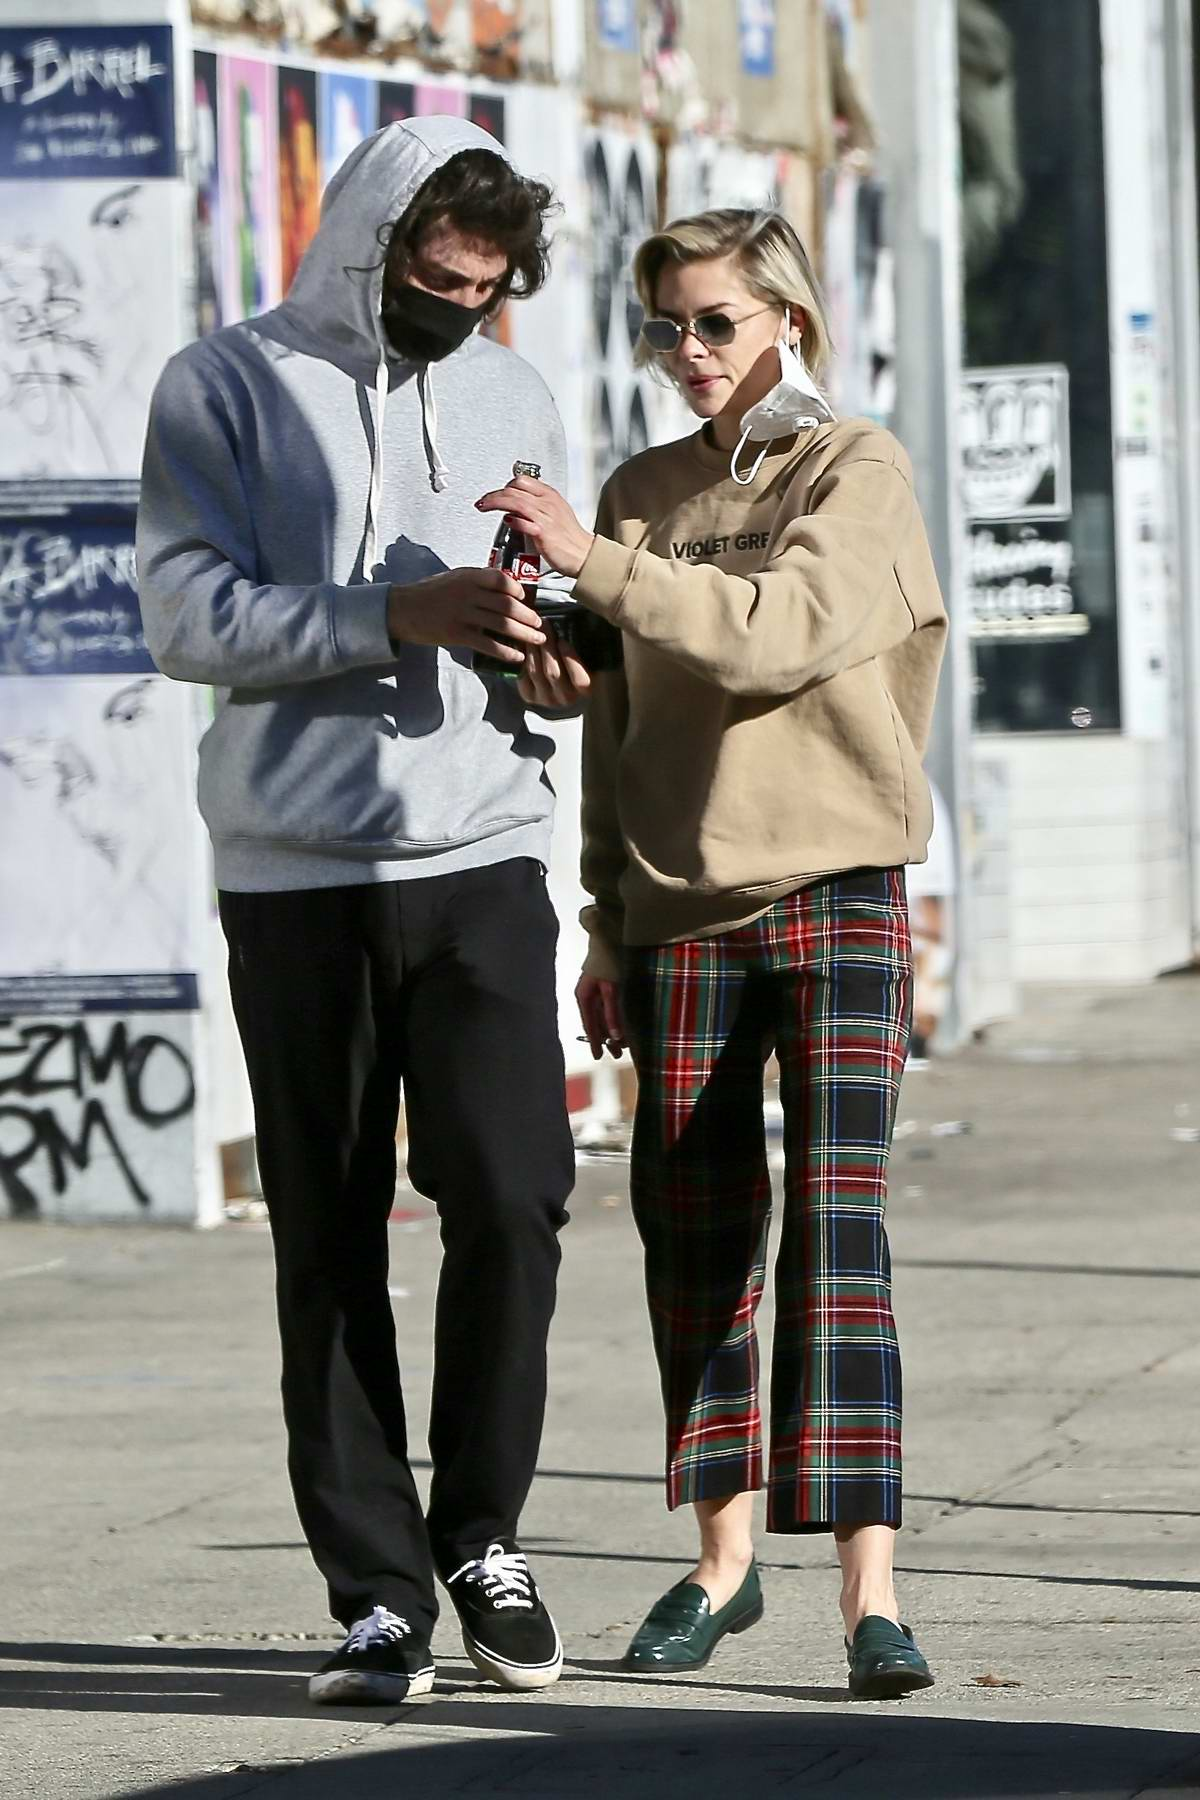 Jaime King enjoys her afternoon with her new boyfriend Sennett Devermont at the Flea Market in West Hollywood, California